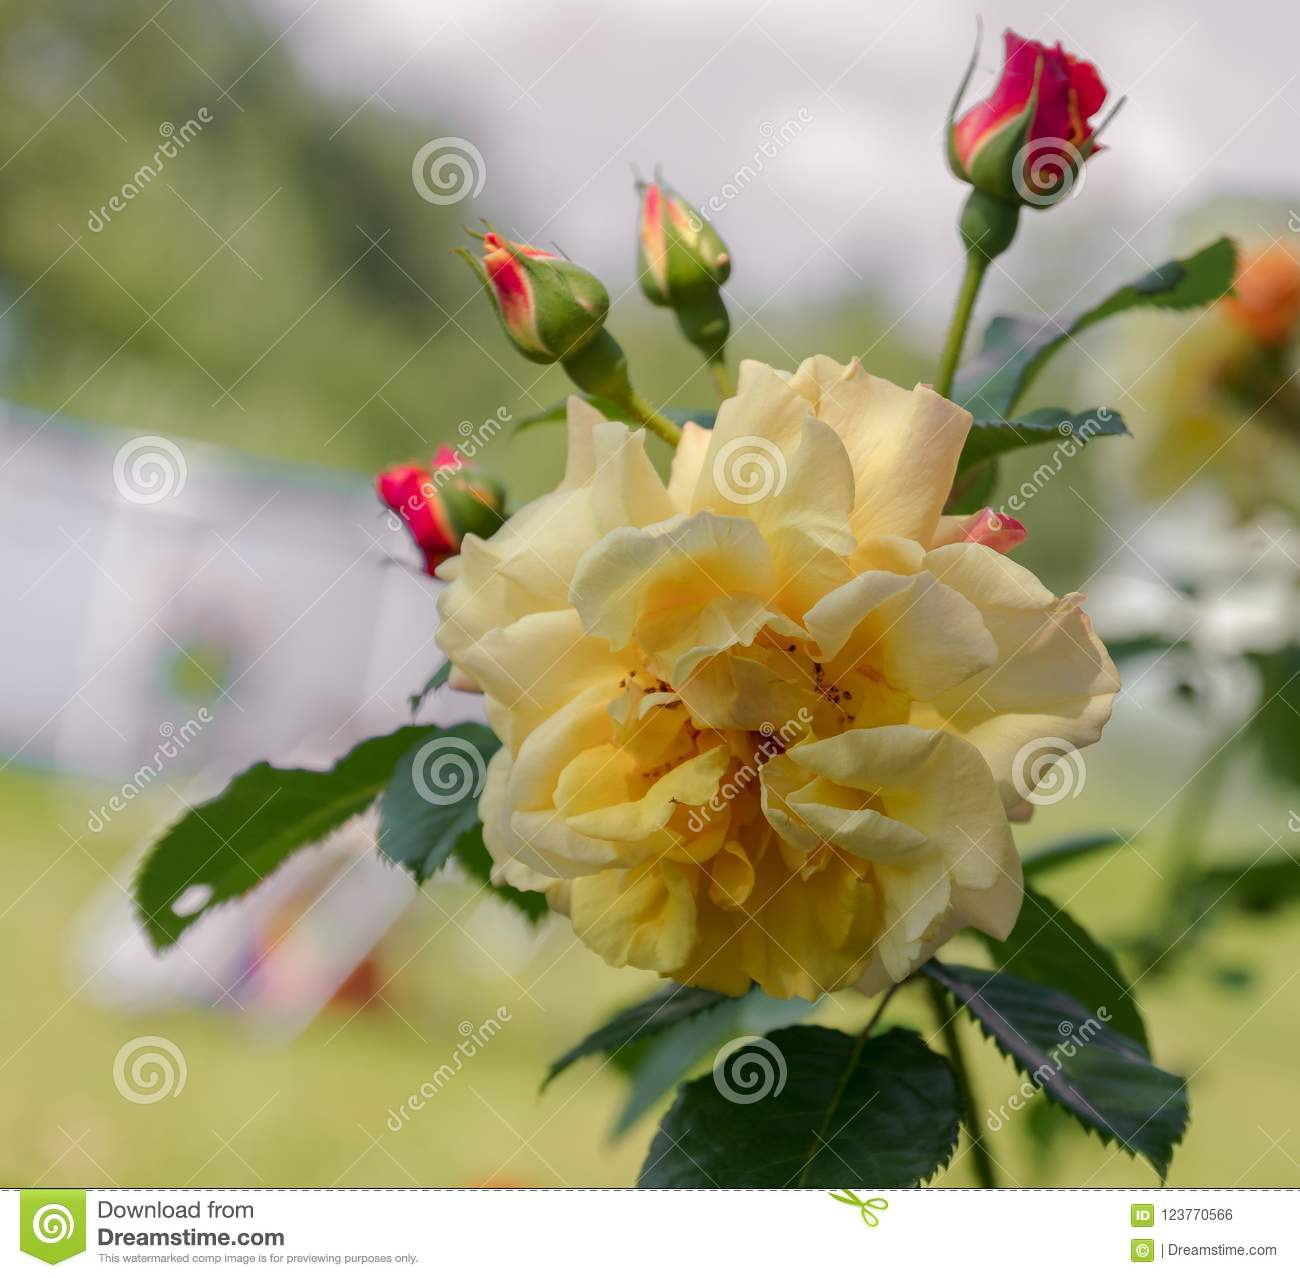 Yellow Roses Meaning Bright Cheerful And Joyful Create Warm